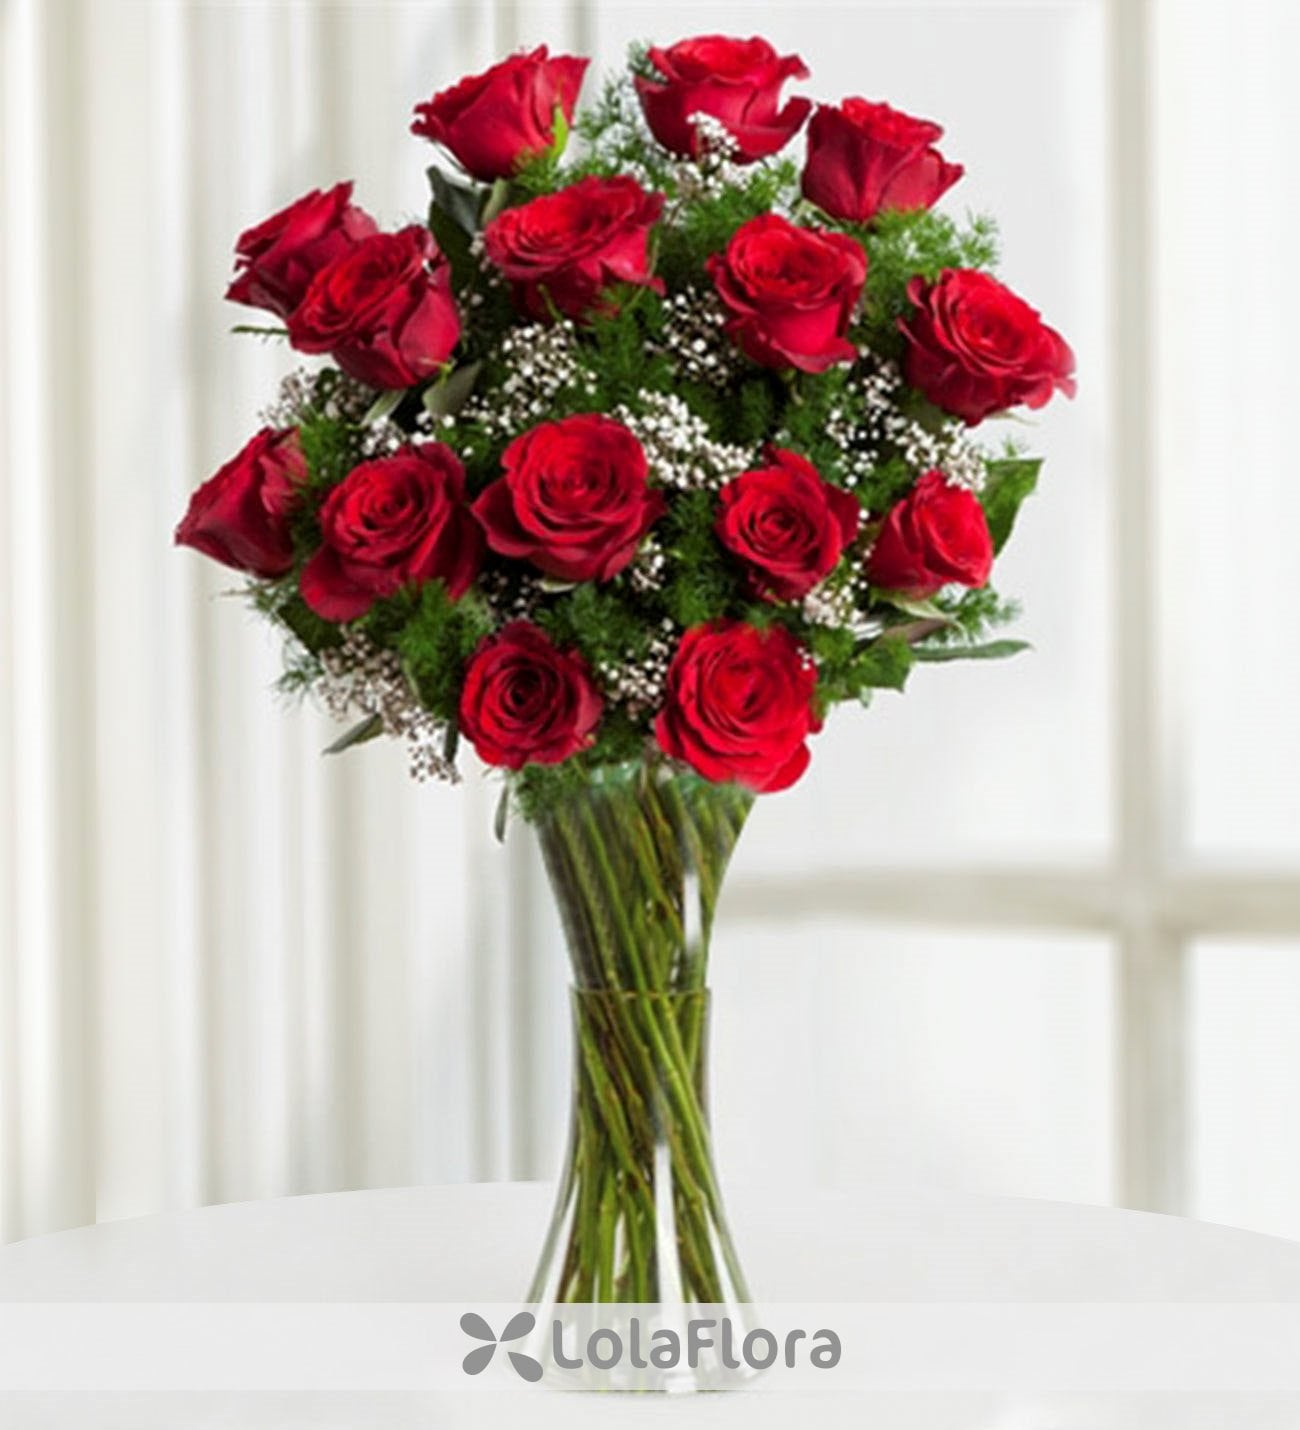 15 Red Roses The Magic Of Love